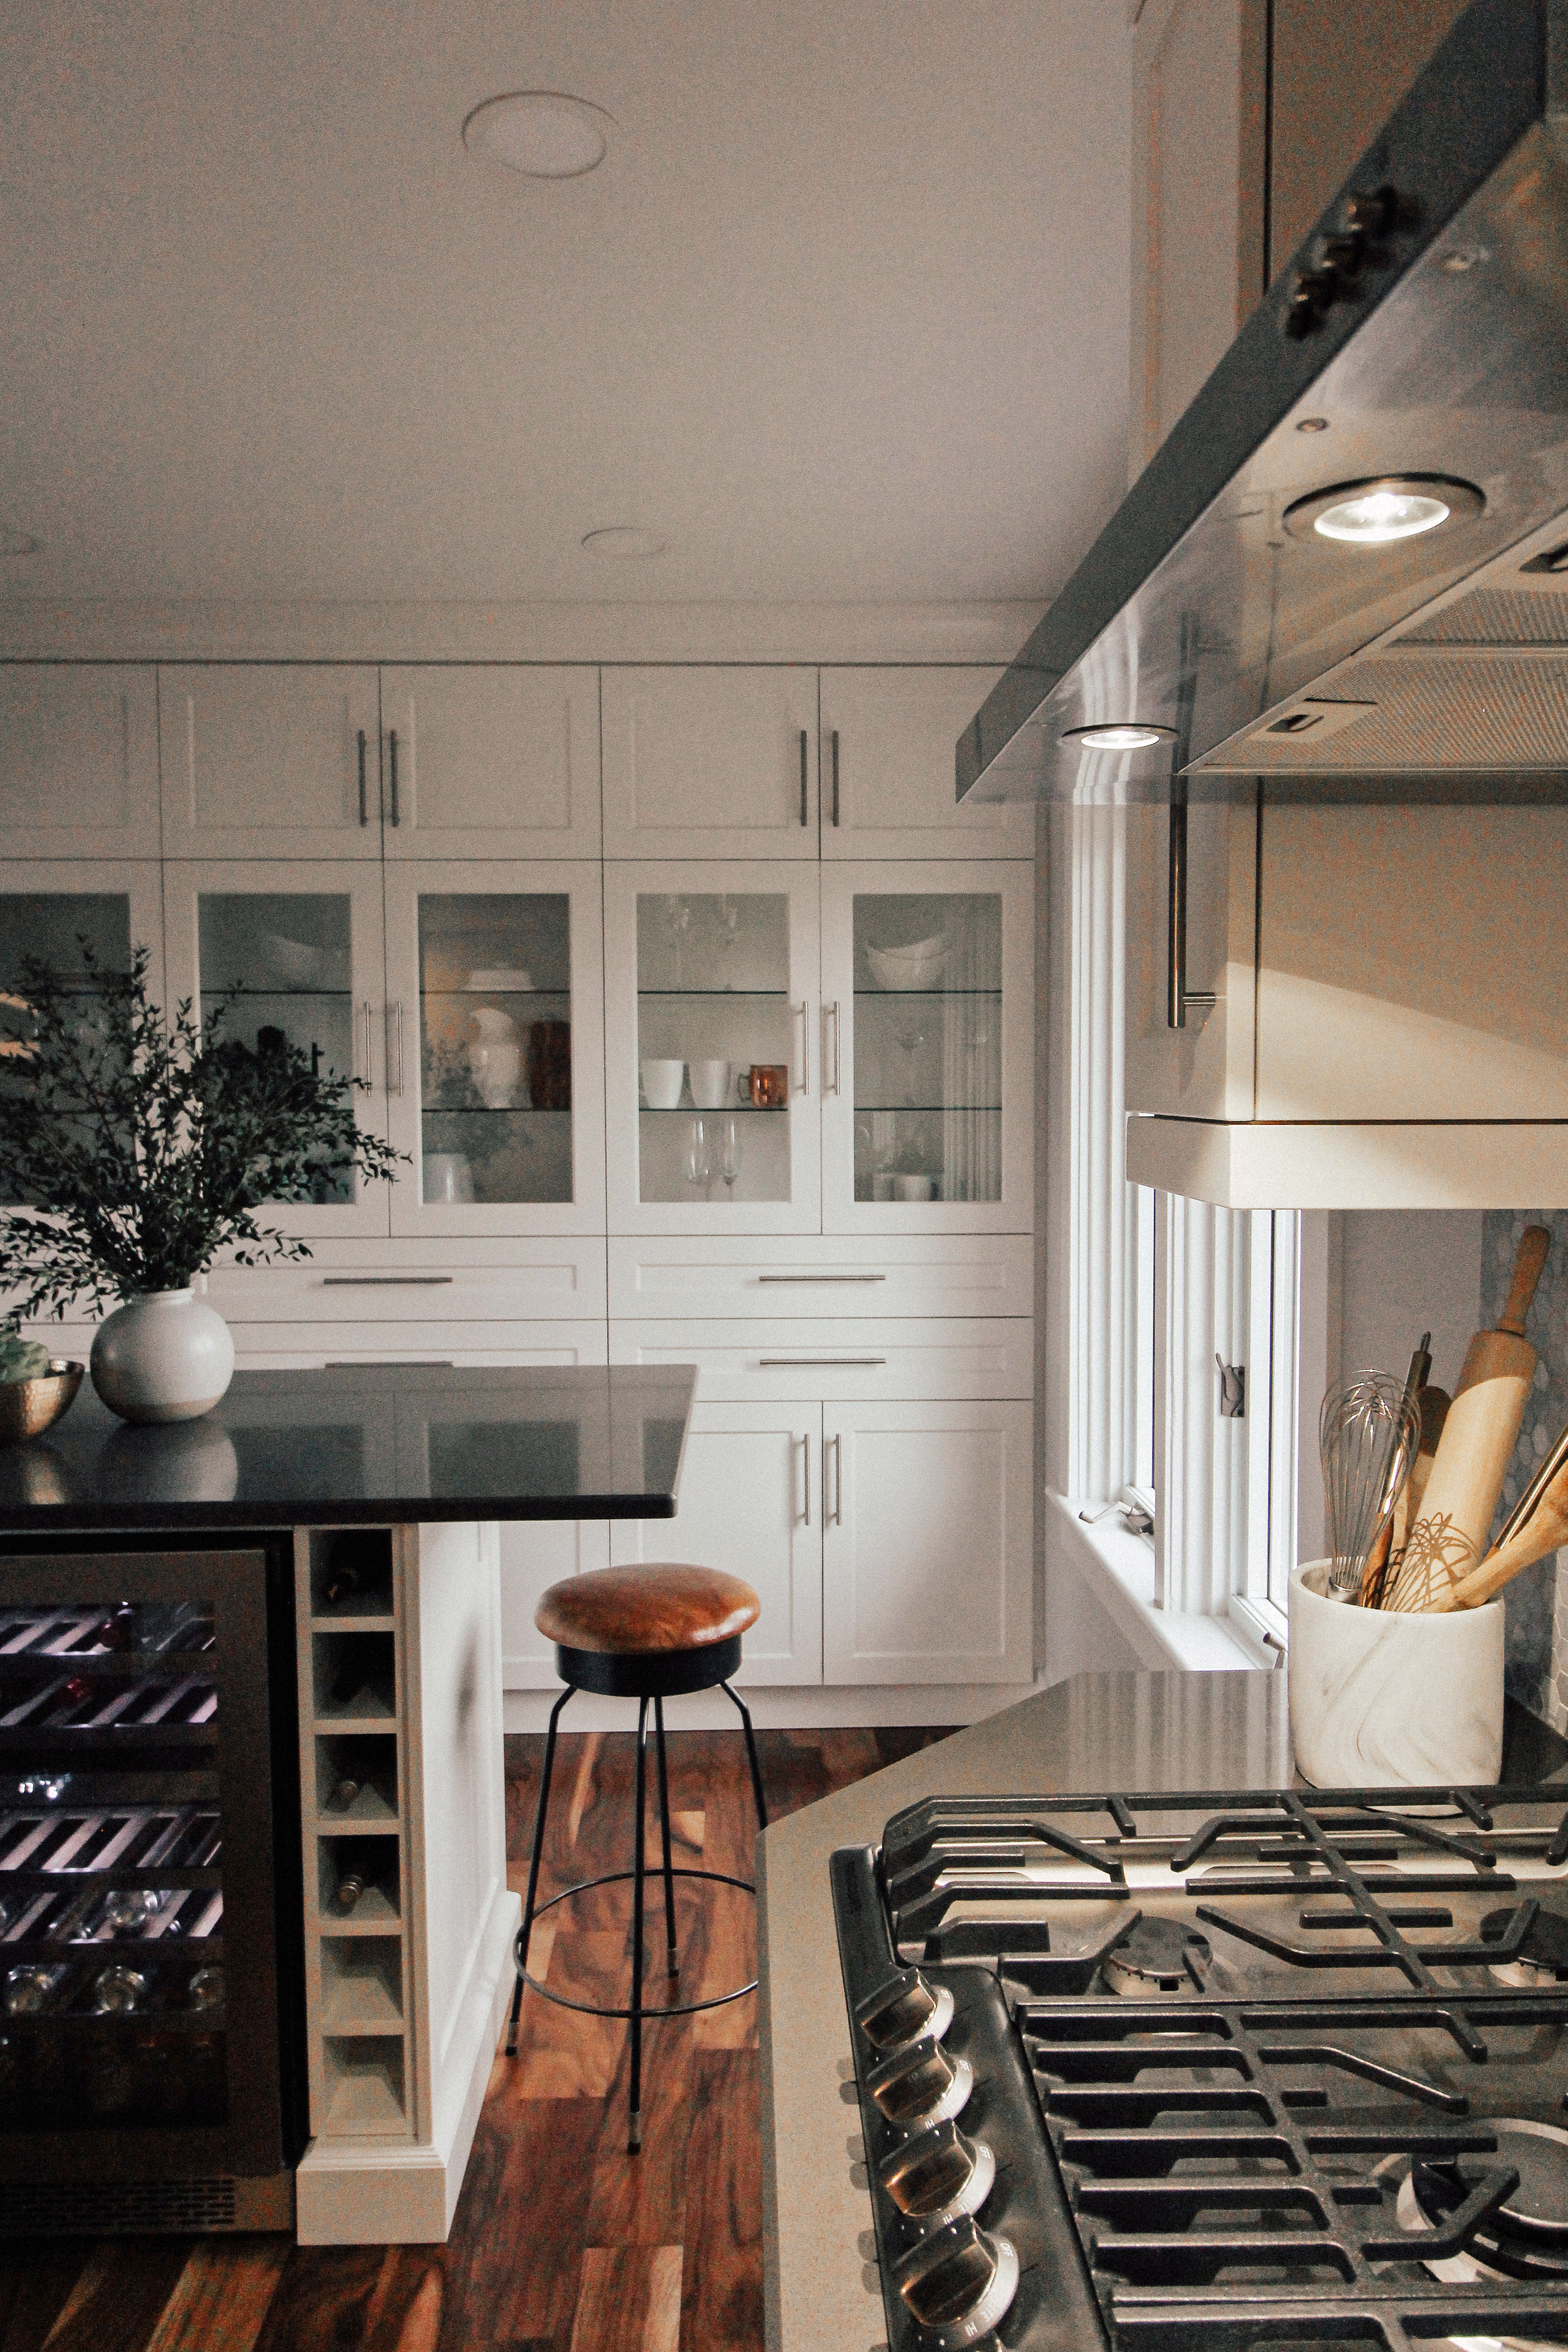 Palmer Kitchen Island Pantry View.jpg